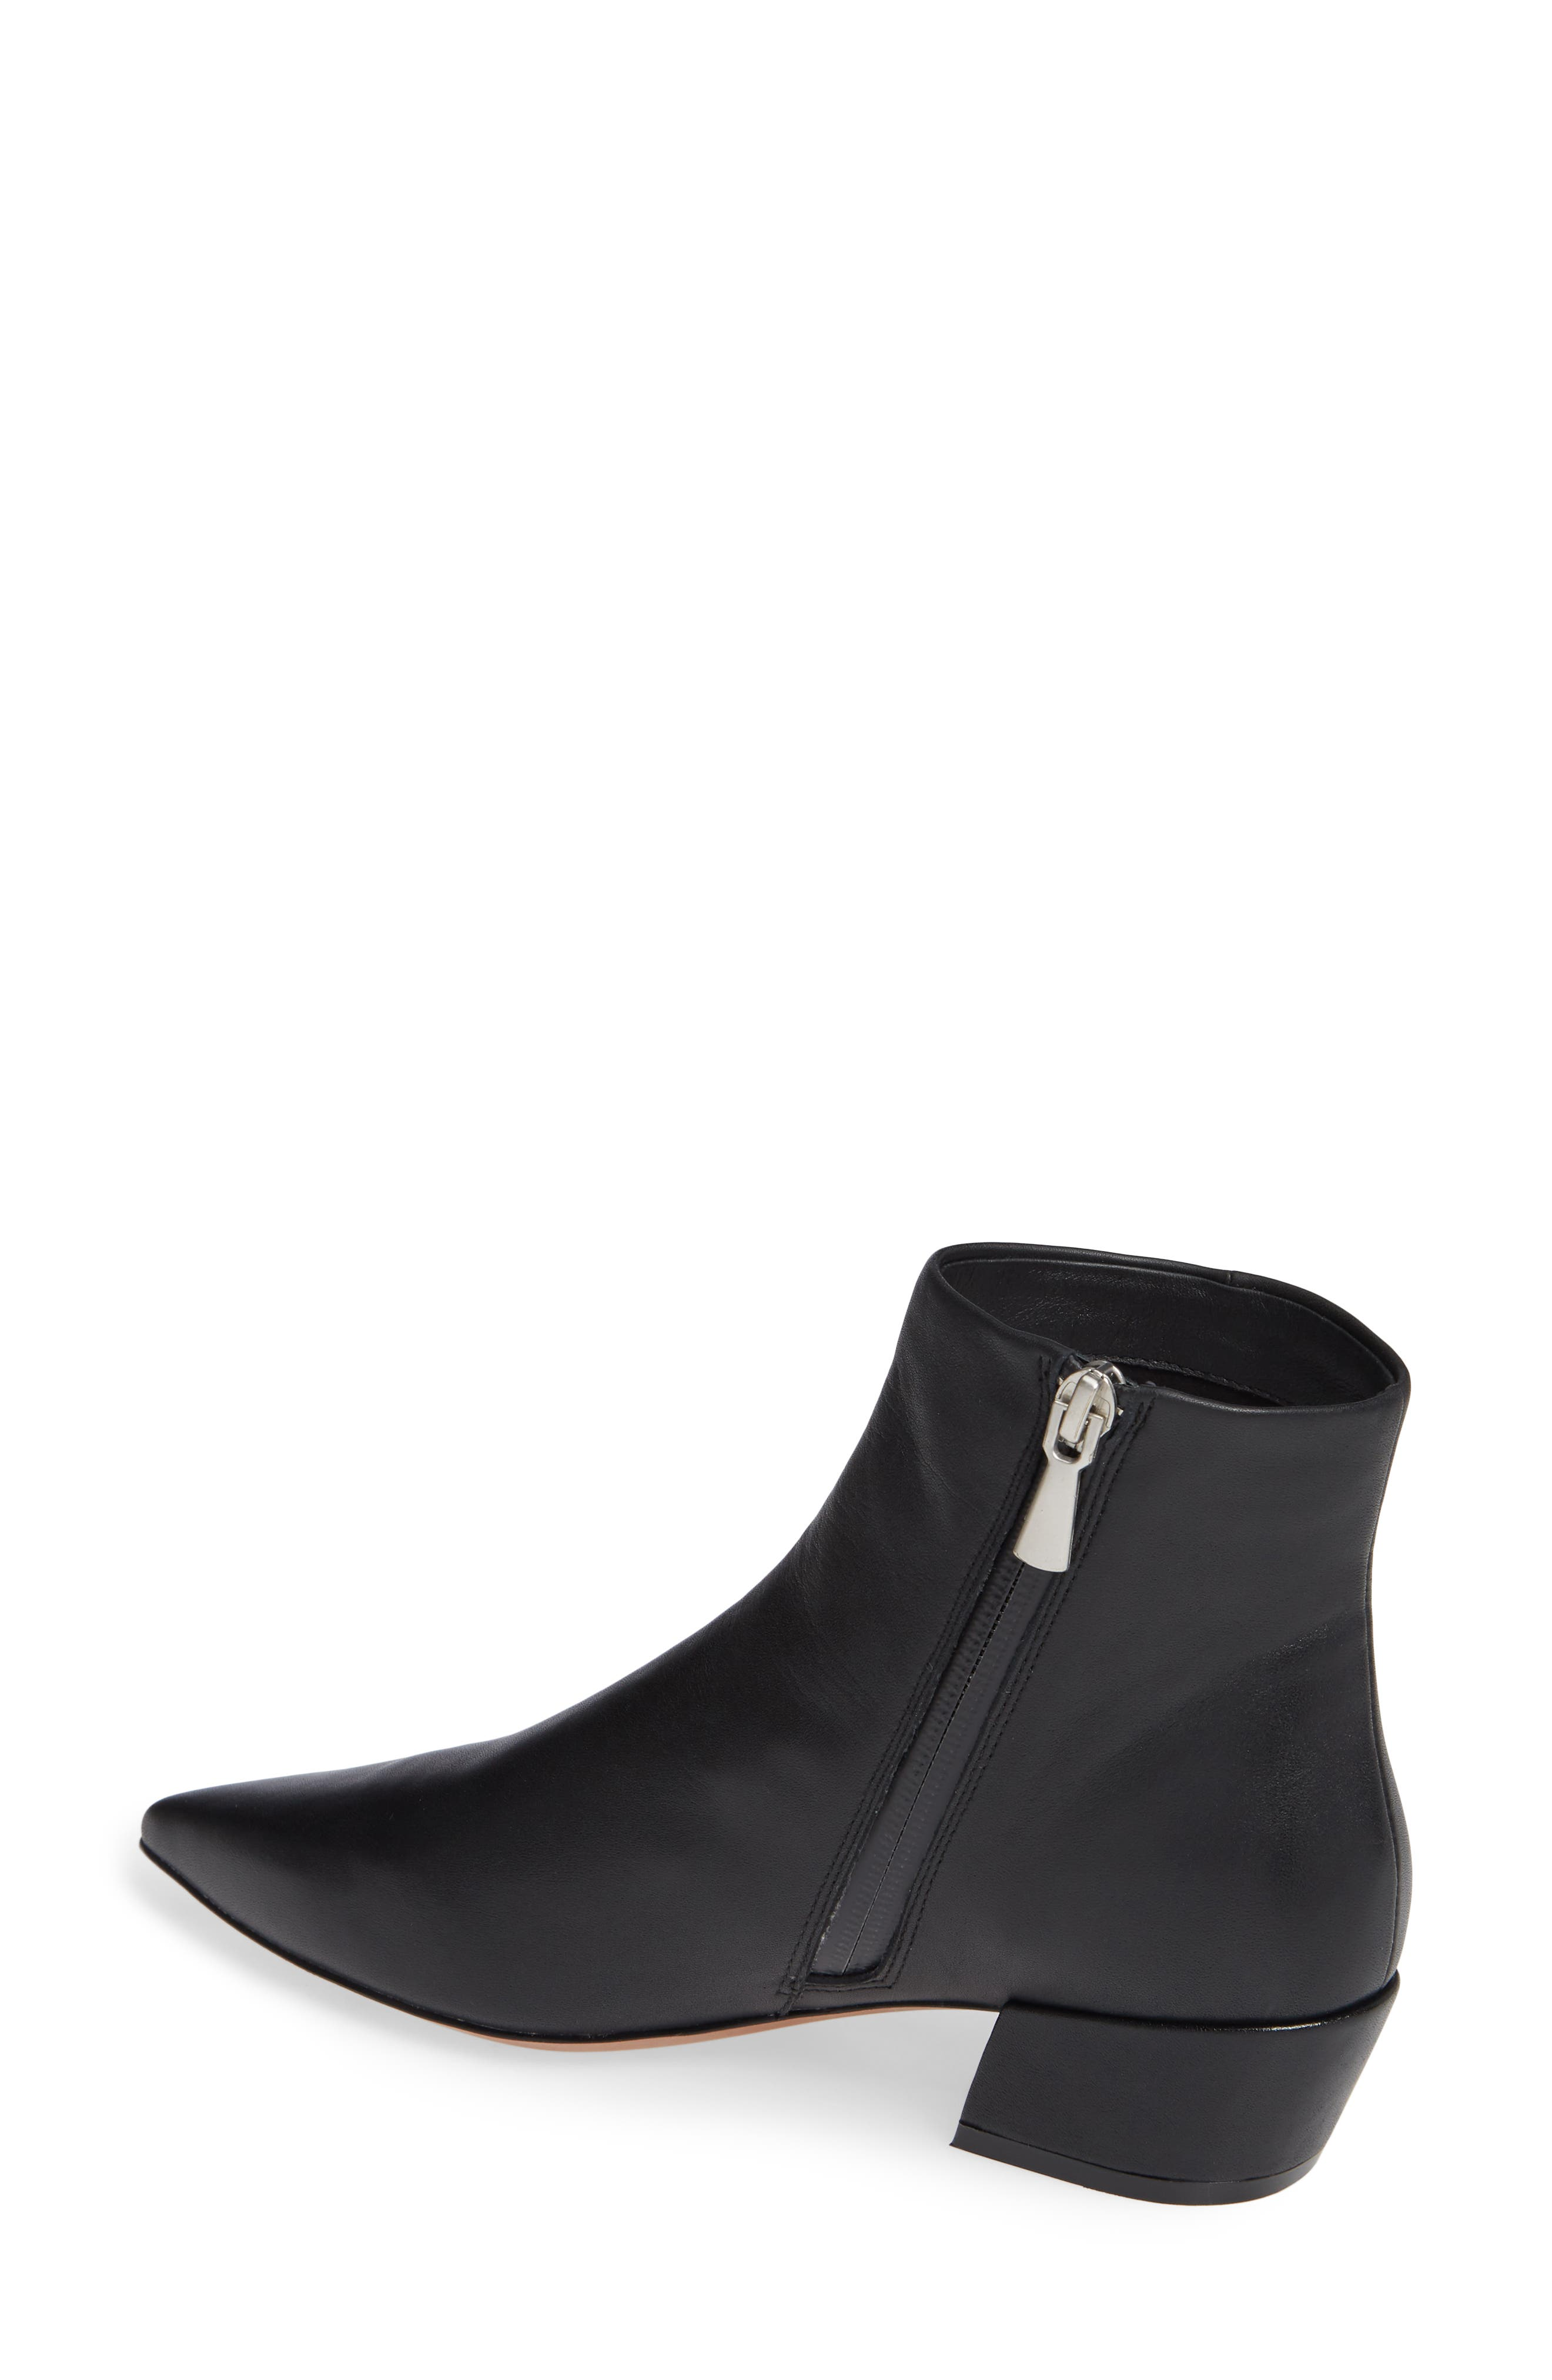 LINEA PAOLO, Robyn Waterproof Boot, Alternate thumbnail 2, color, BLACK LEATHER